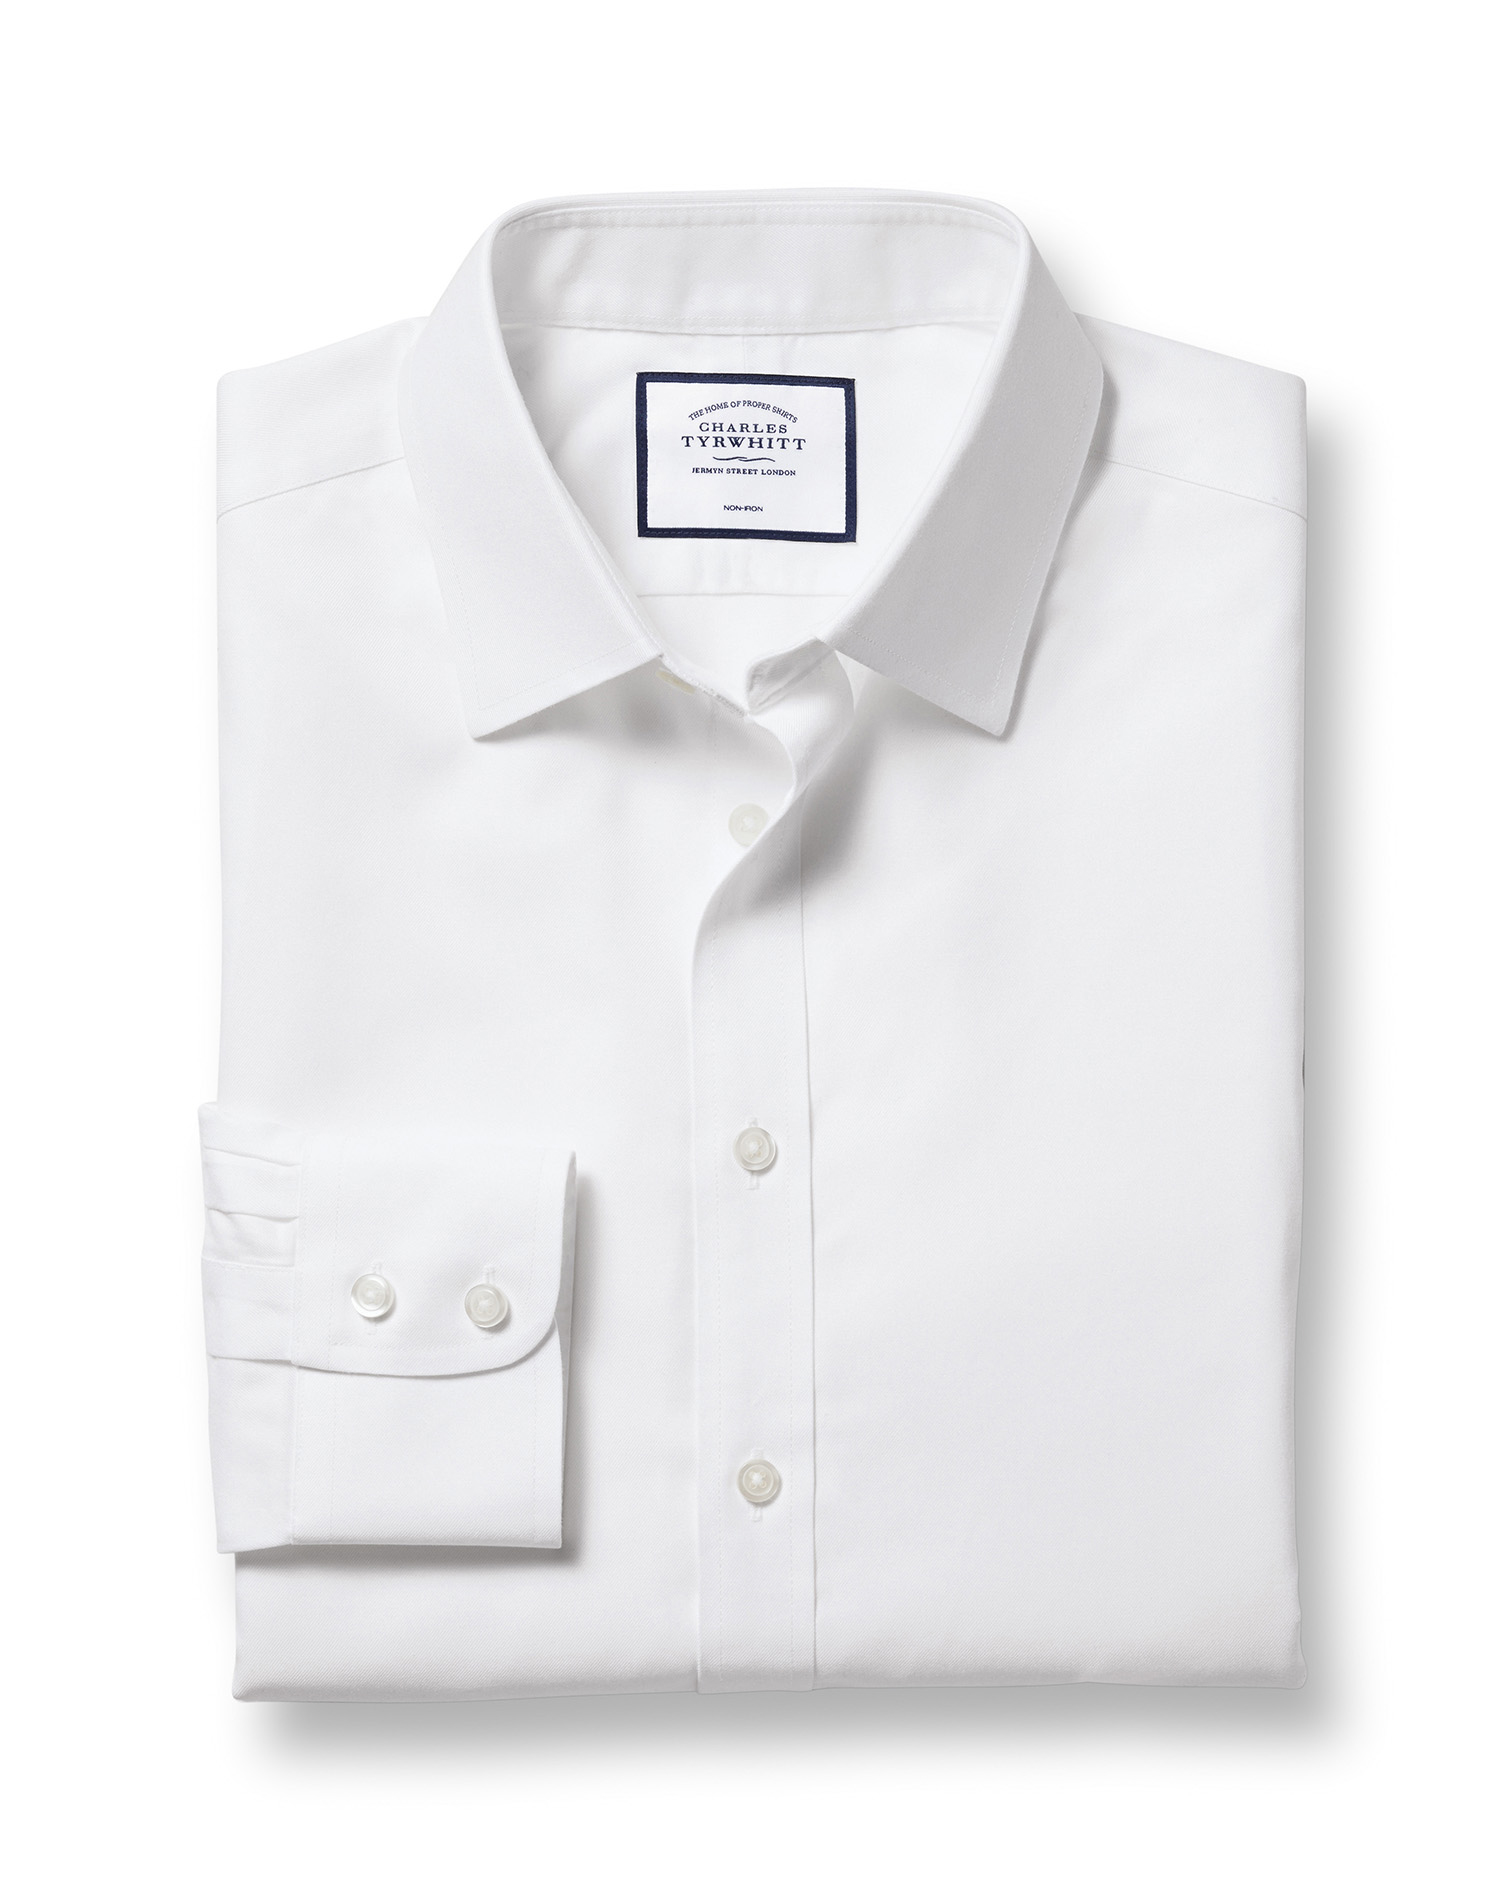 Slim Fit Non-Iron Twill White Cotton Formal Shirt Single Cuff Size 16.5/36 by Charles Tyrwhitt